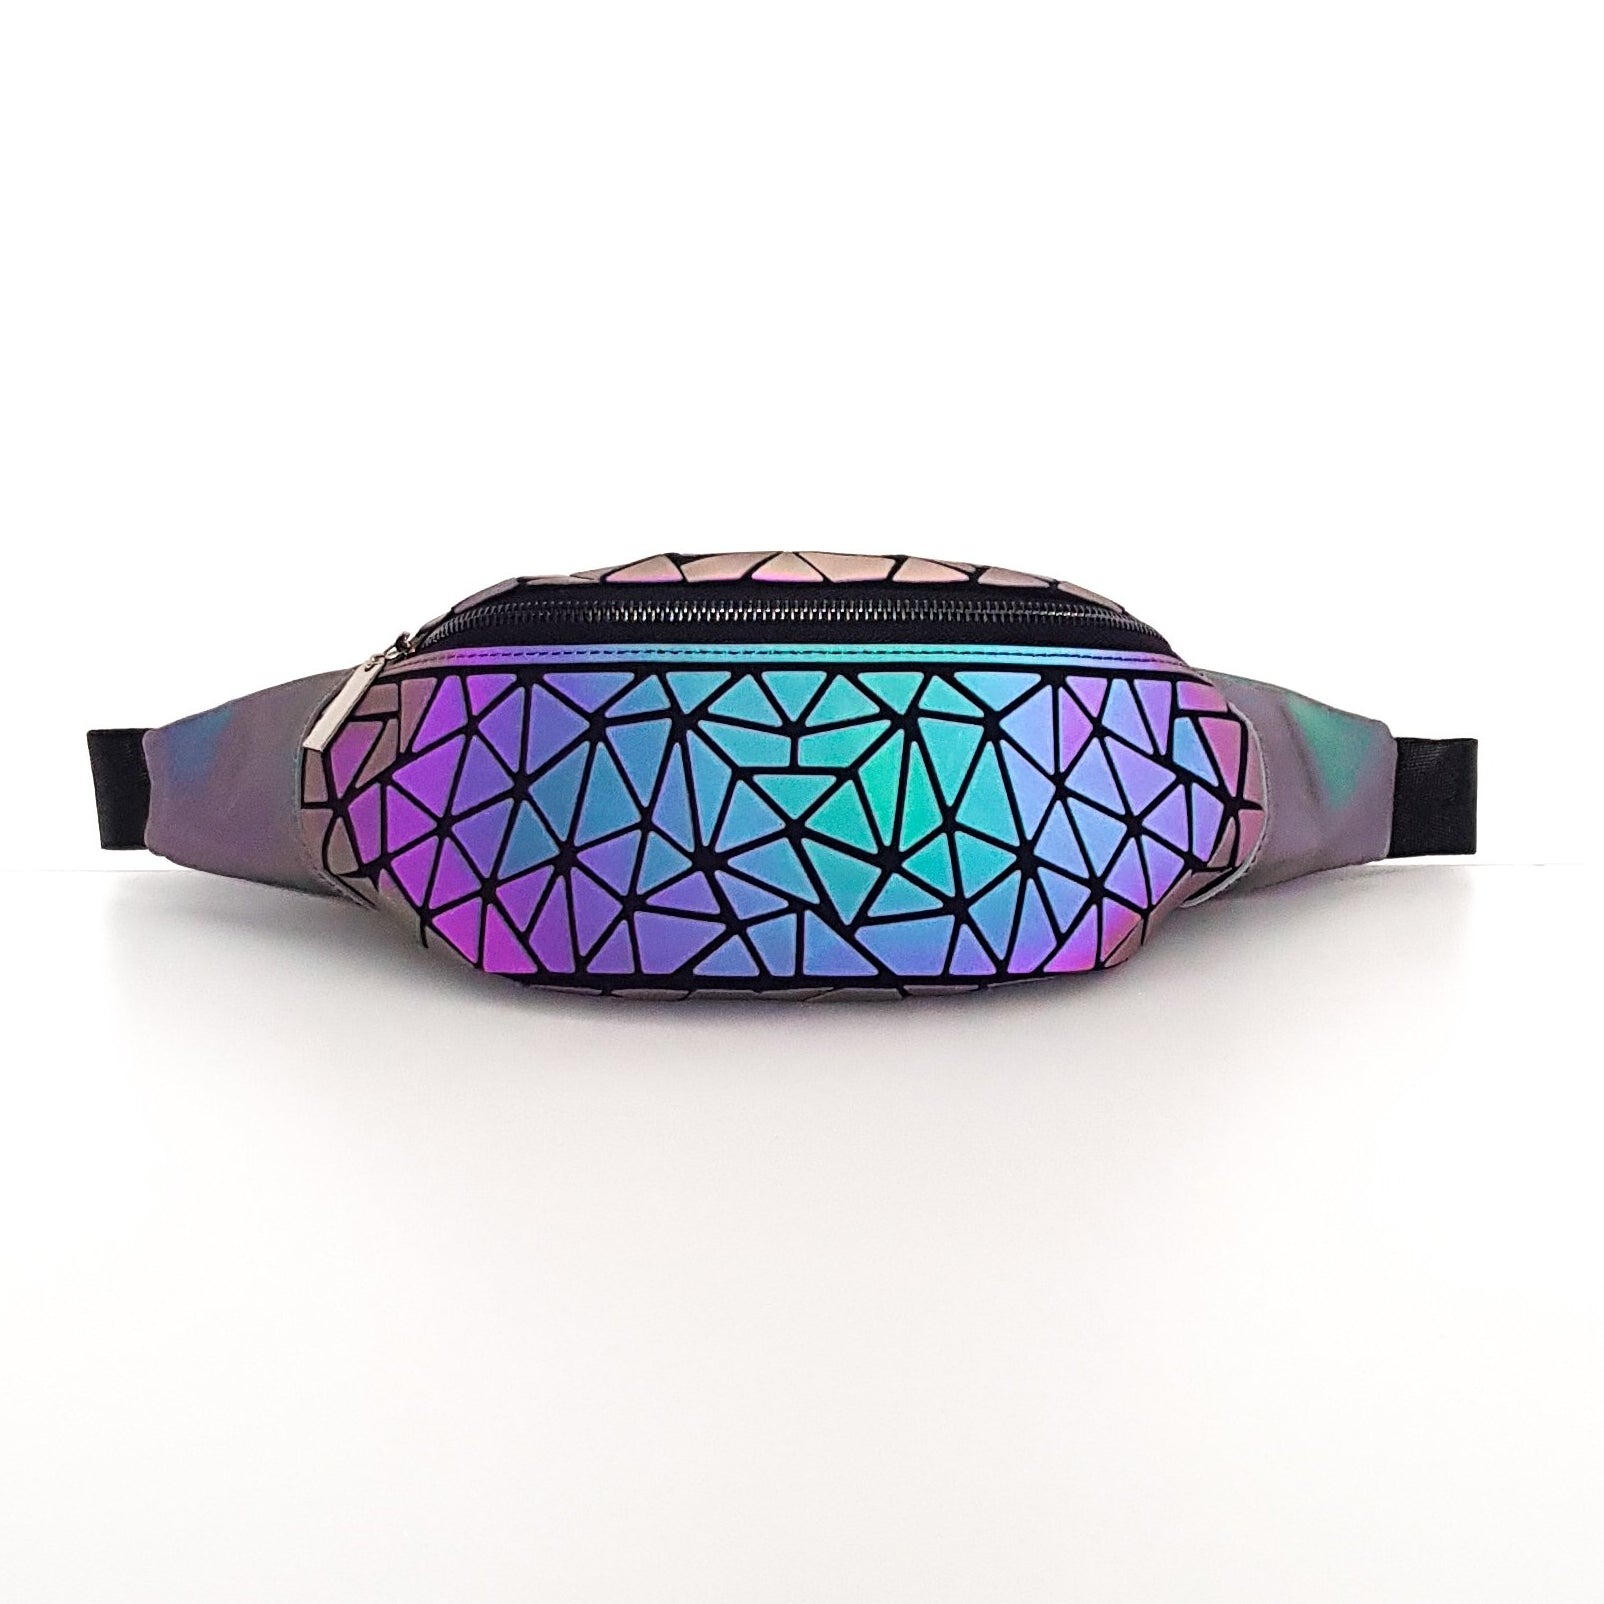 Geometric Luminous Fanny pack waist Light reflective Geometric bum bag - Stand Out Bags